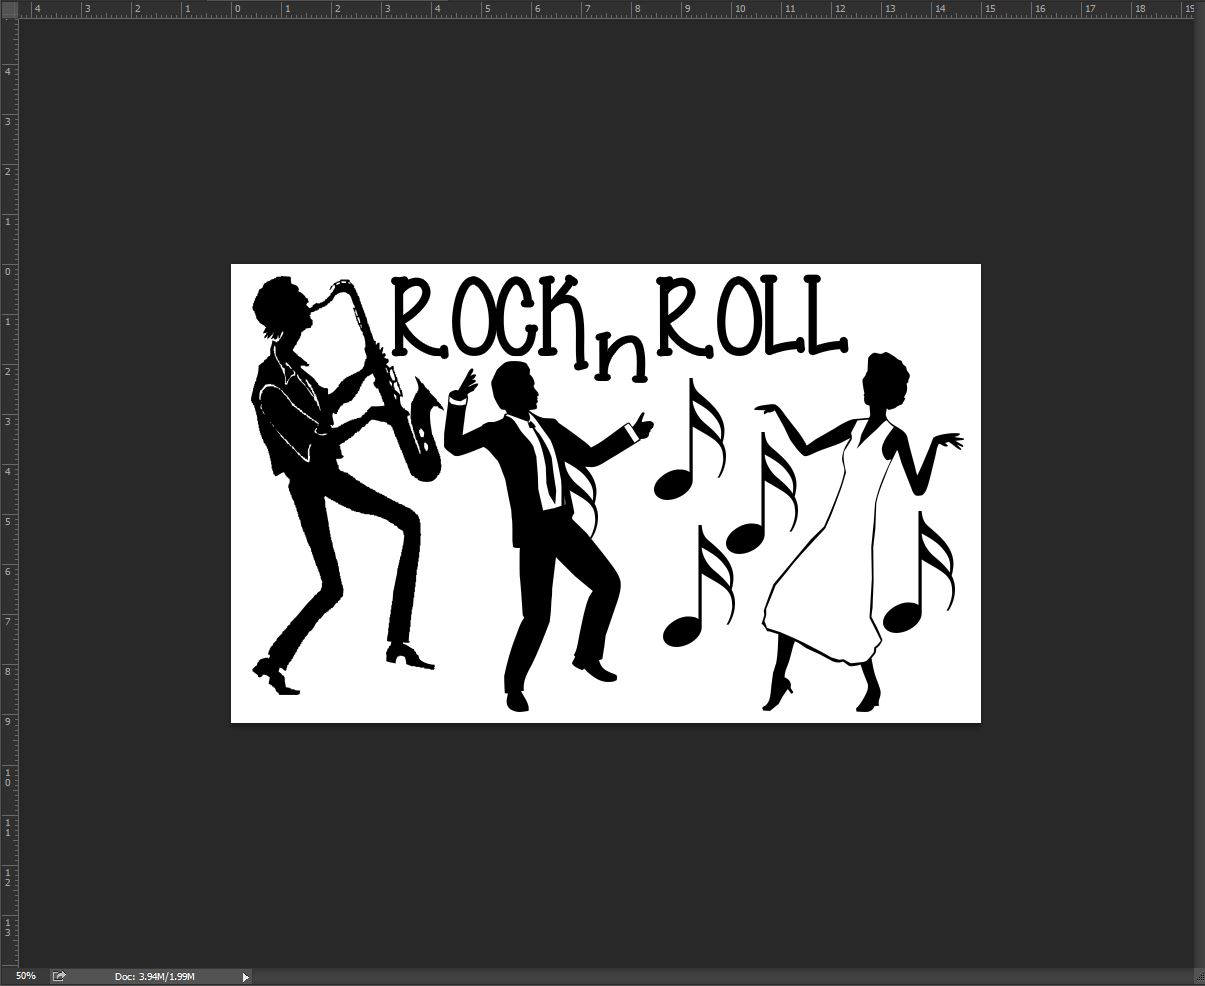 Rock and roll sax player 110 x 180mm min buy 3